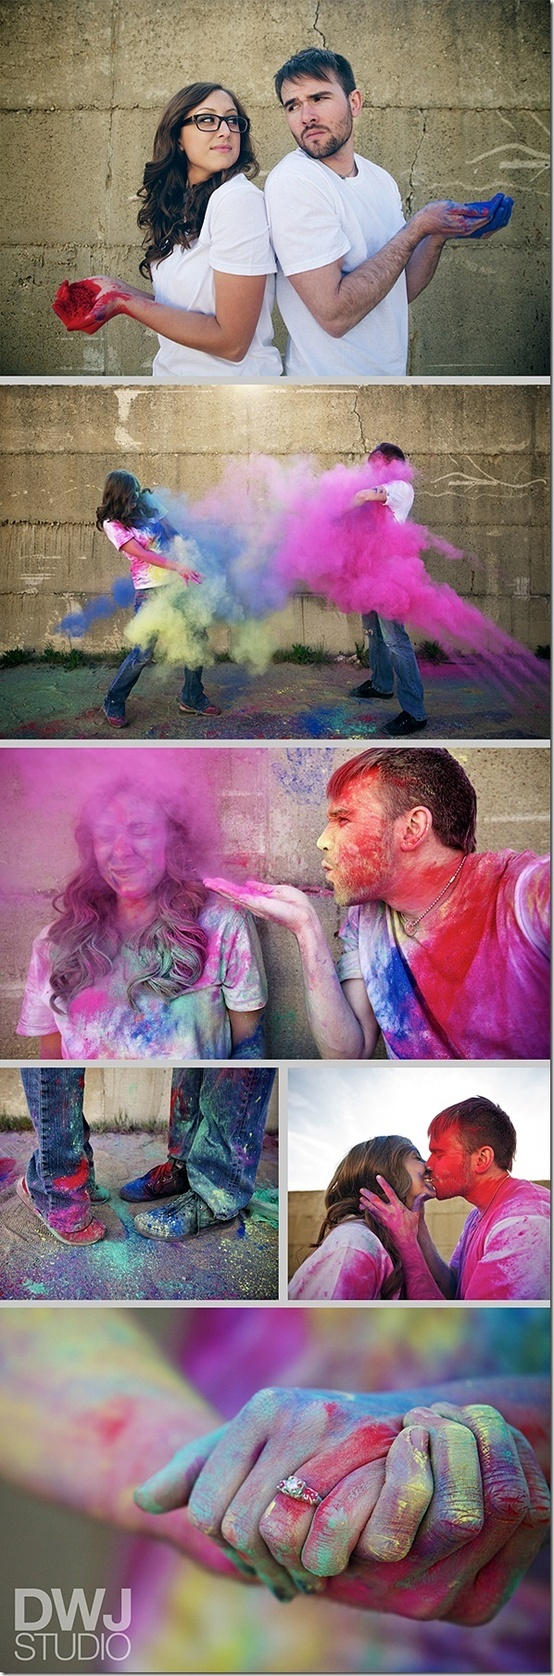 30 Engagement Photo Ideas  Way to go Pastor Eric and Sam! Randomly popping up on my Pinterest feed ❤️ 10/10